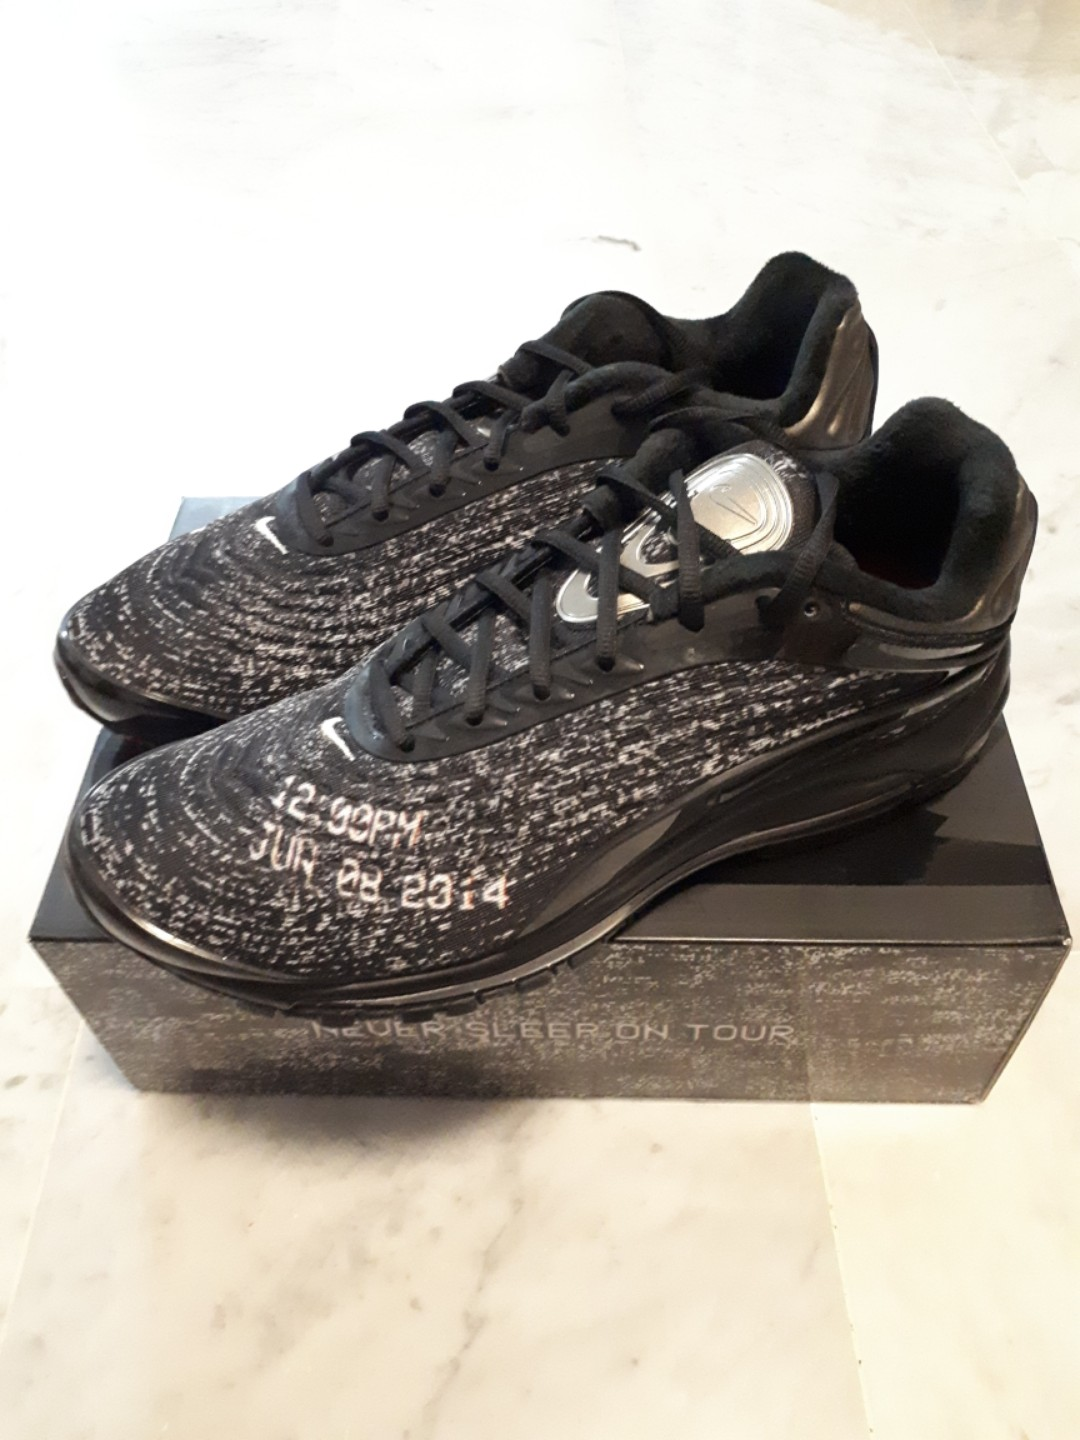 US12 Nike x Skepta Air Max Deluxe Never Sleep On Tour US12 f40c0ba75